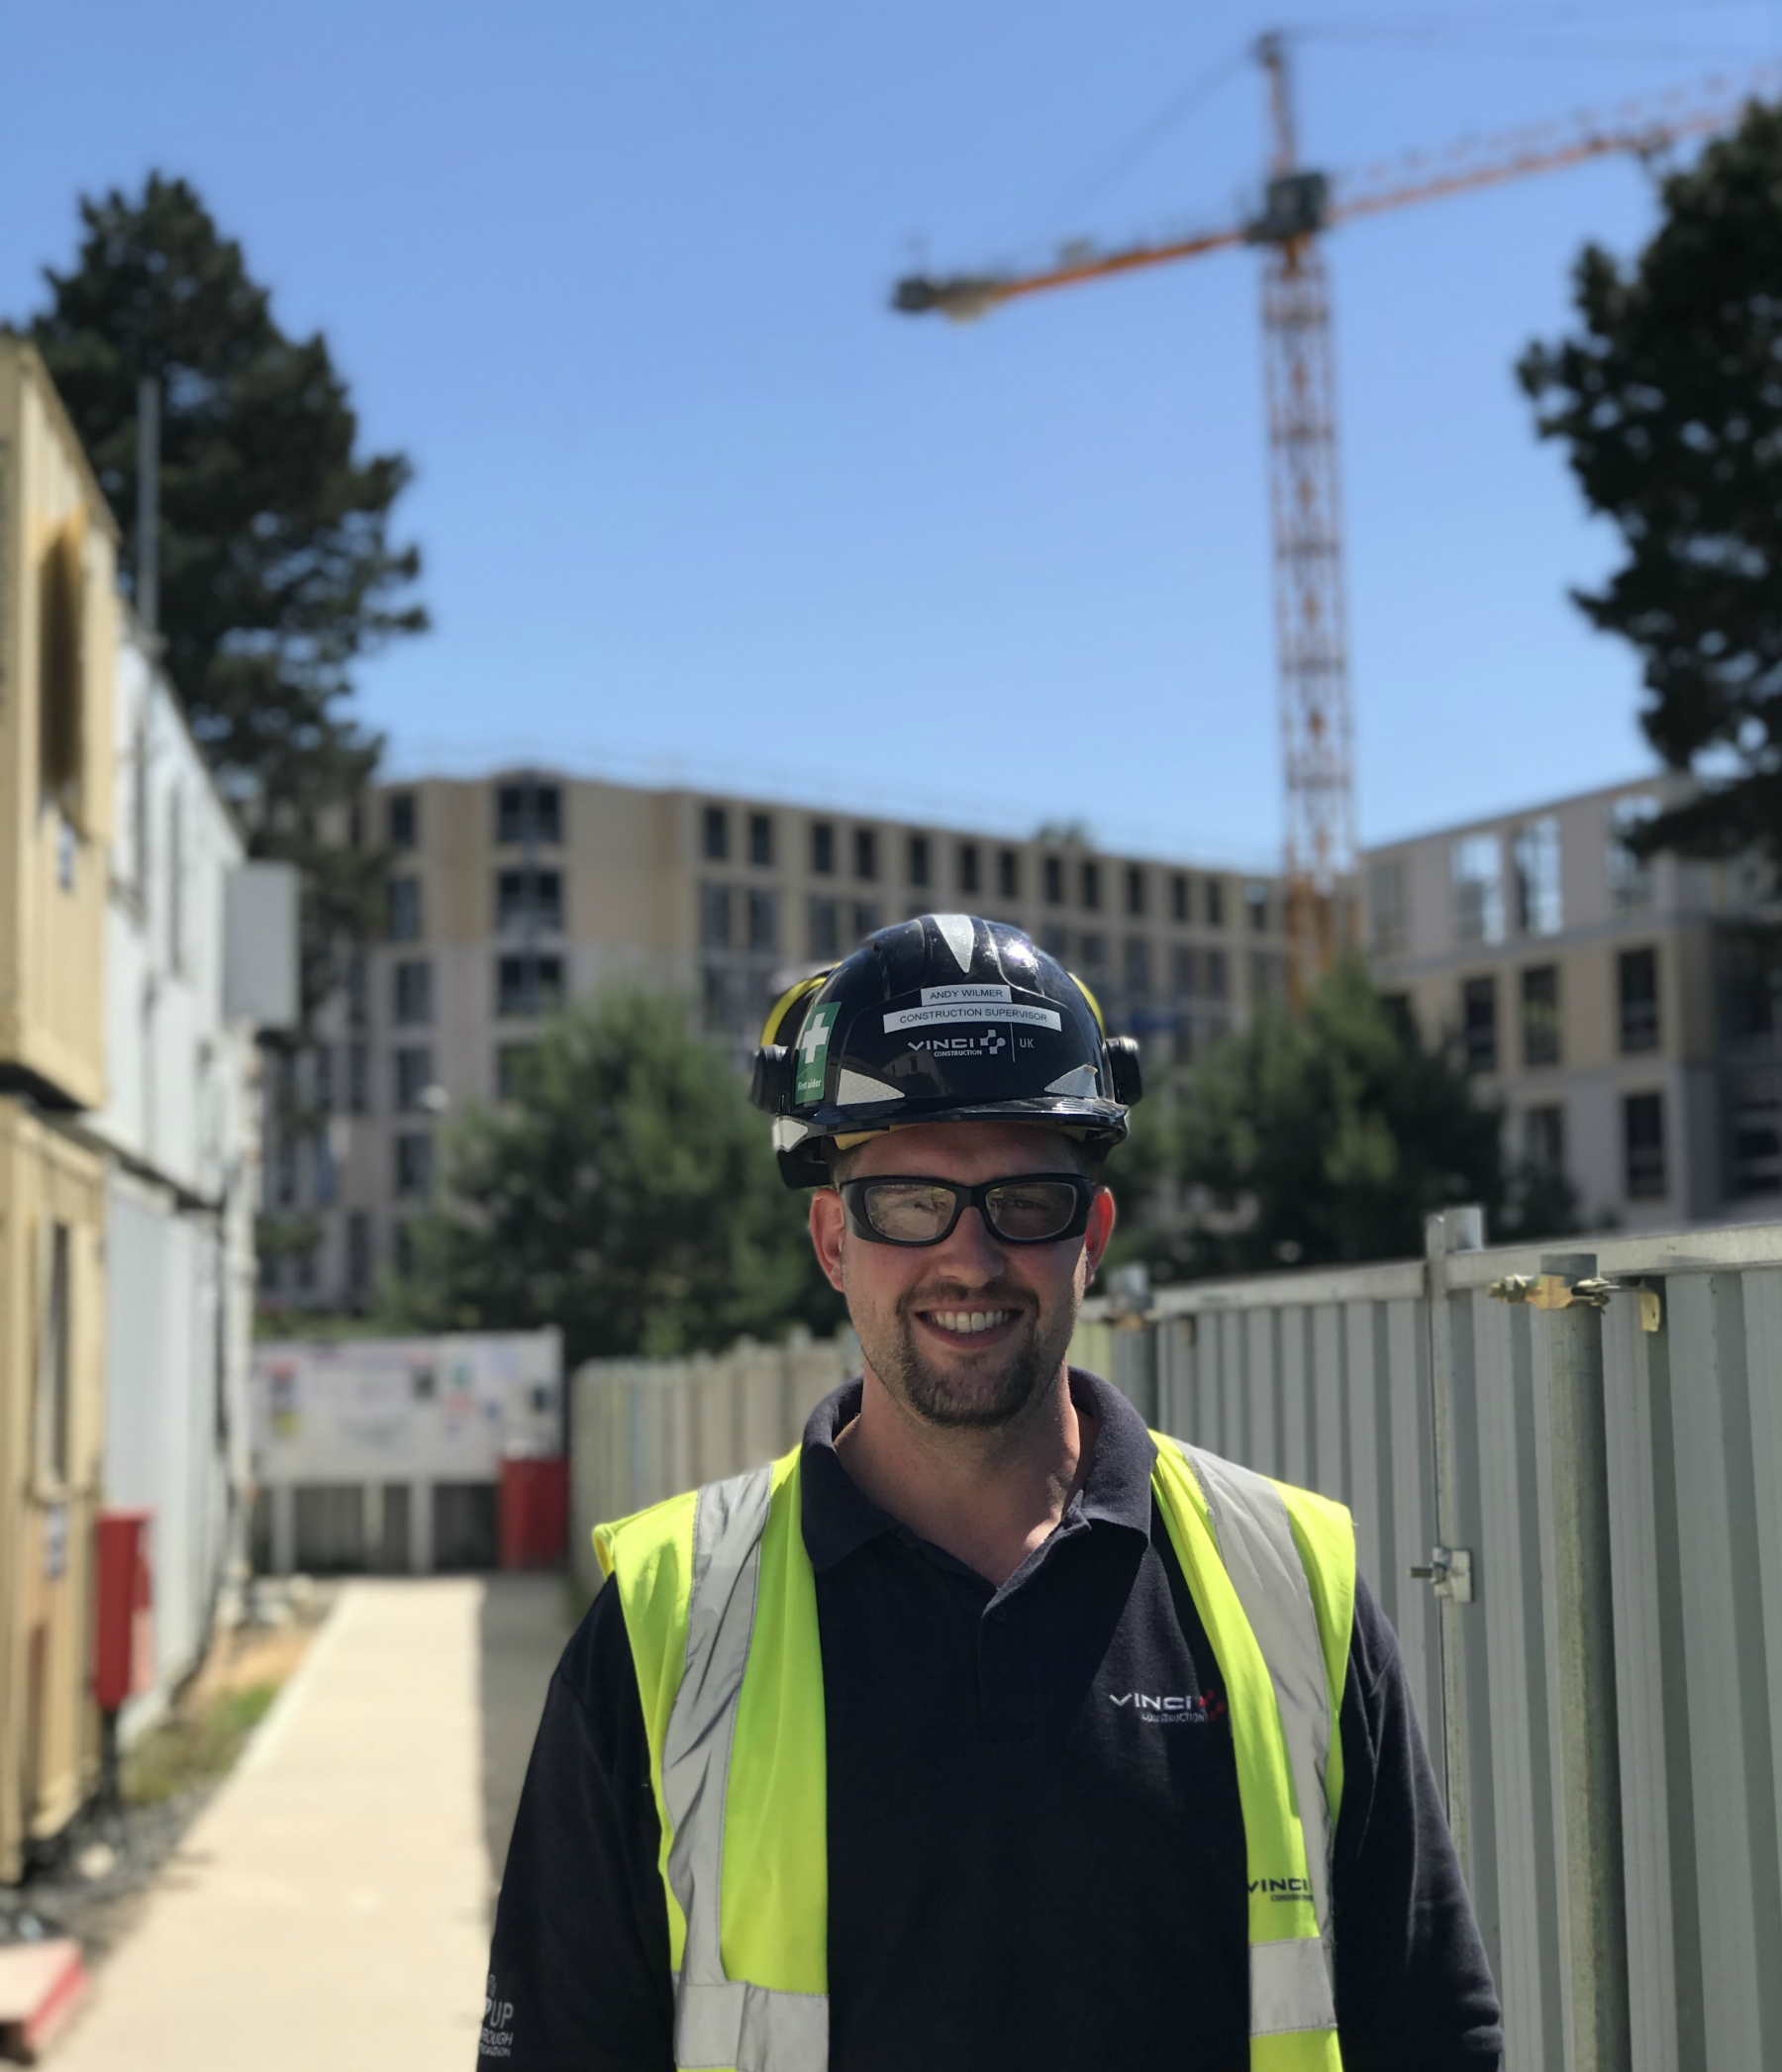 Andy Wilmer works for VINCI Construction UK